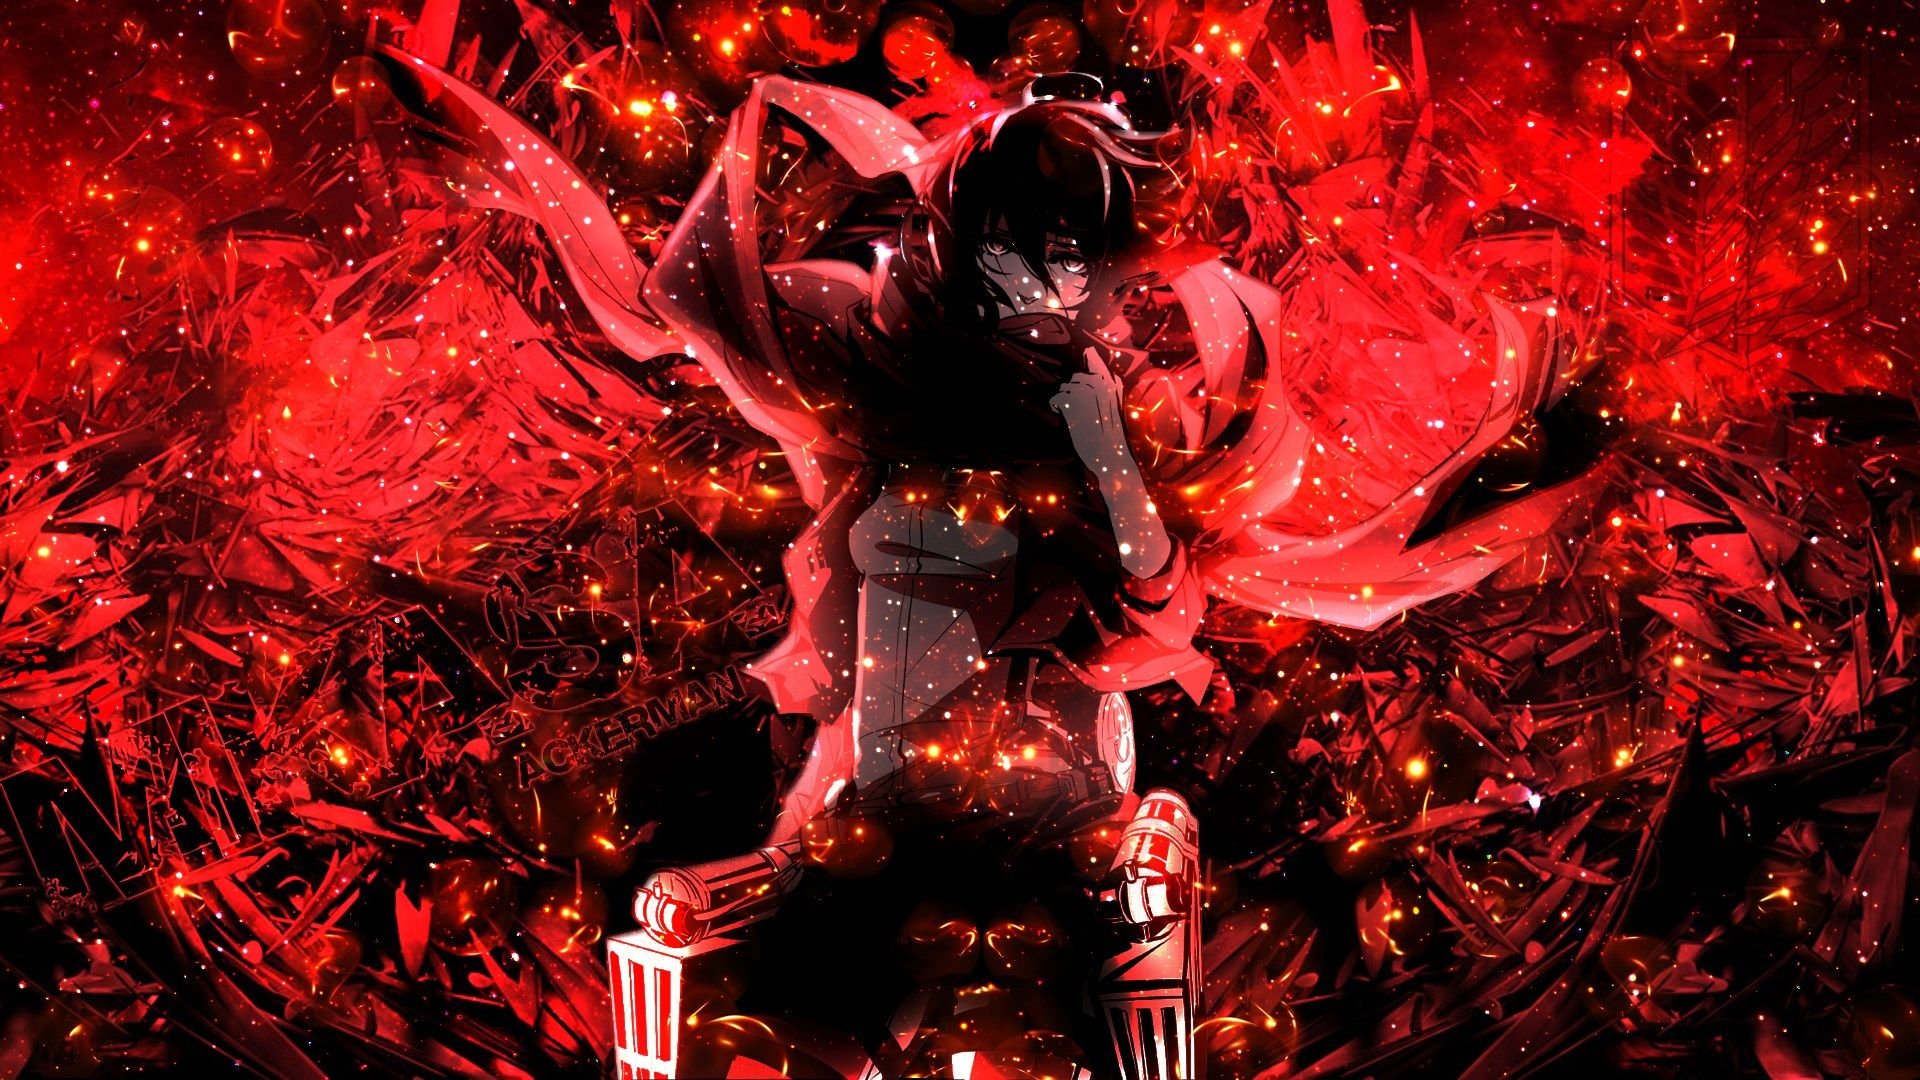 Attack On Titan Christmas Wallpapers Top Free Attack On Titan Christmas Backgrounds Wallpaperaccess